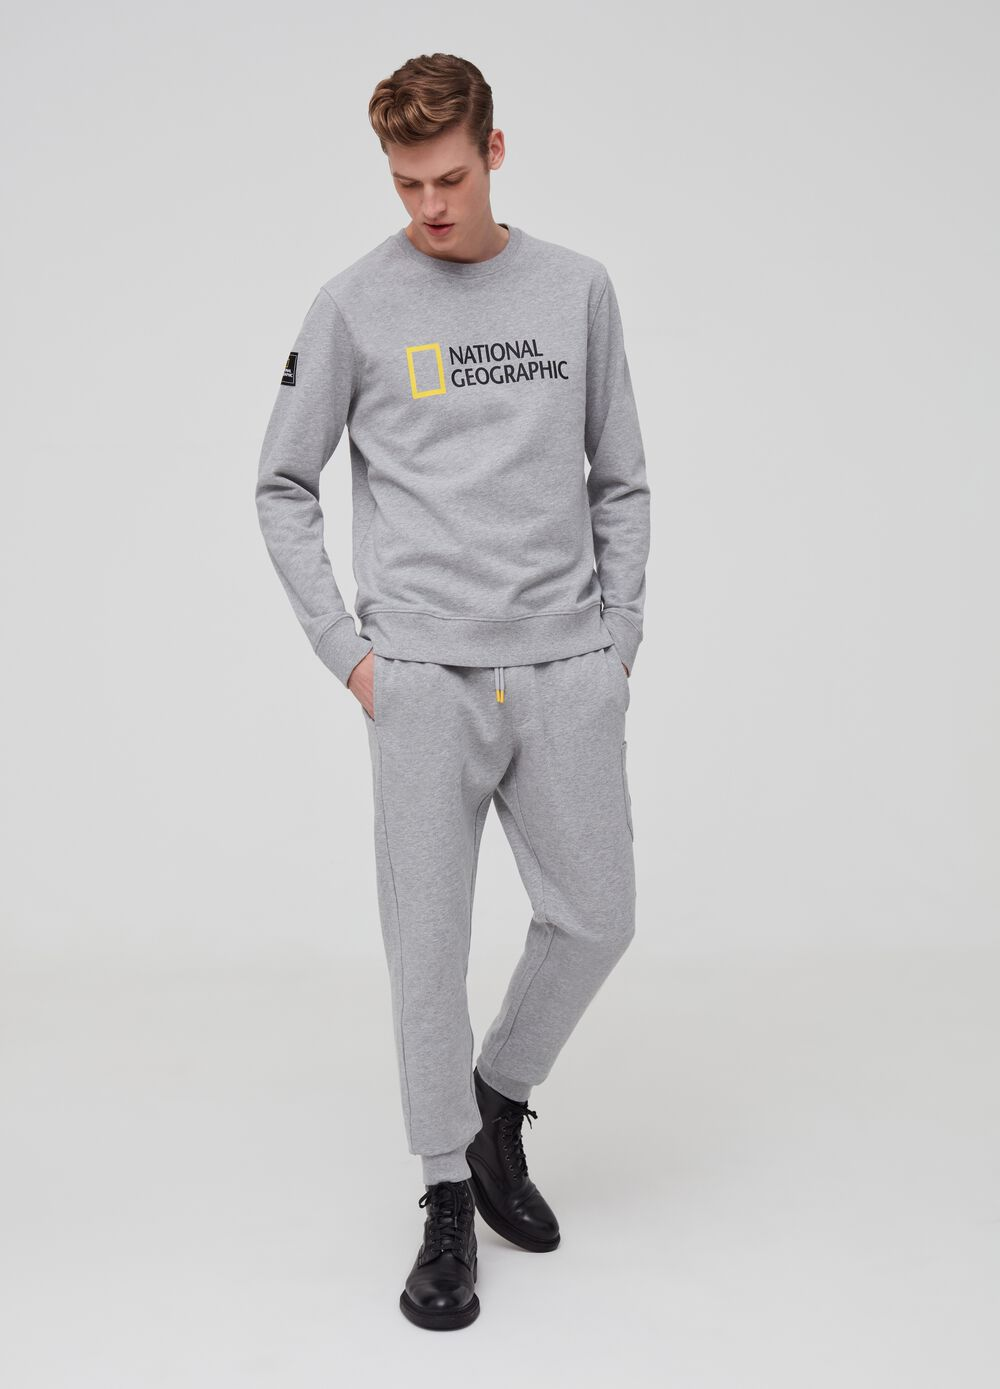 National Geographic mélange joggers